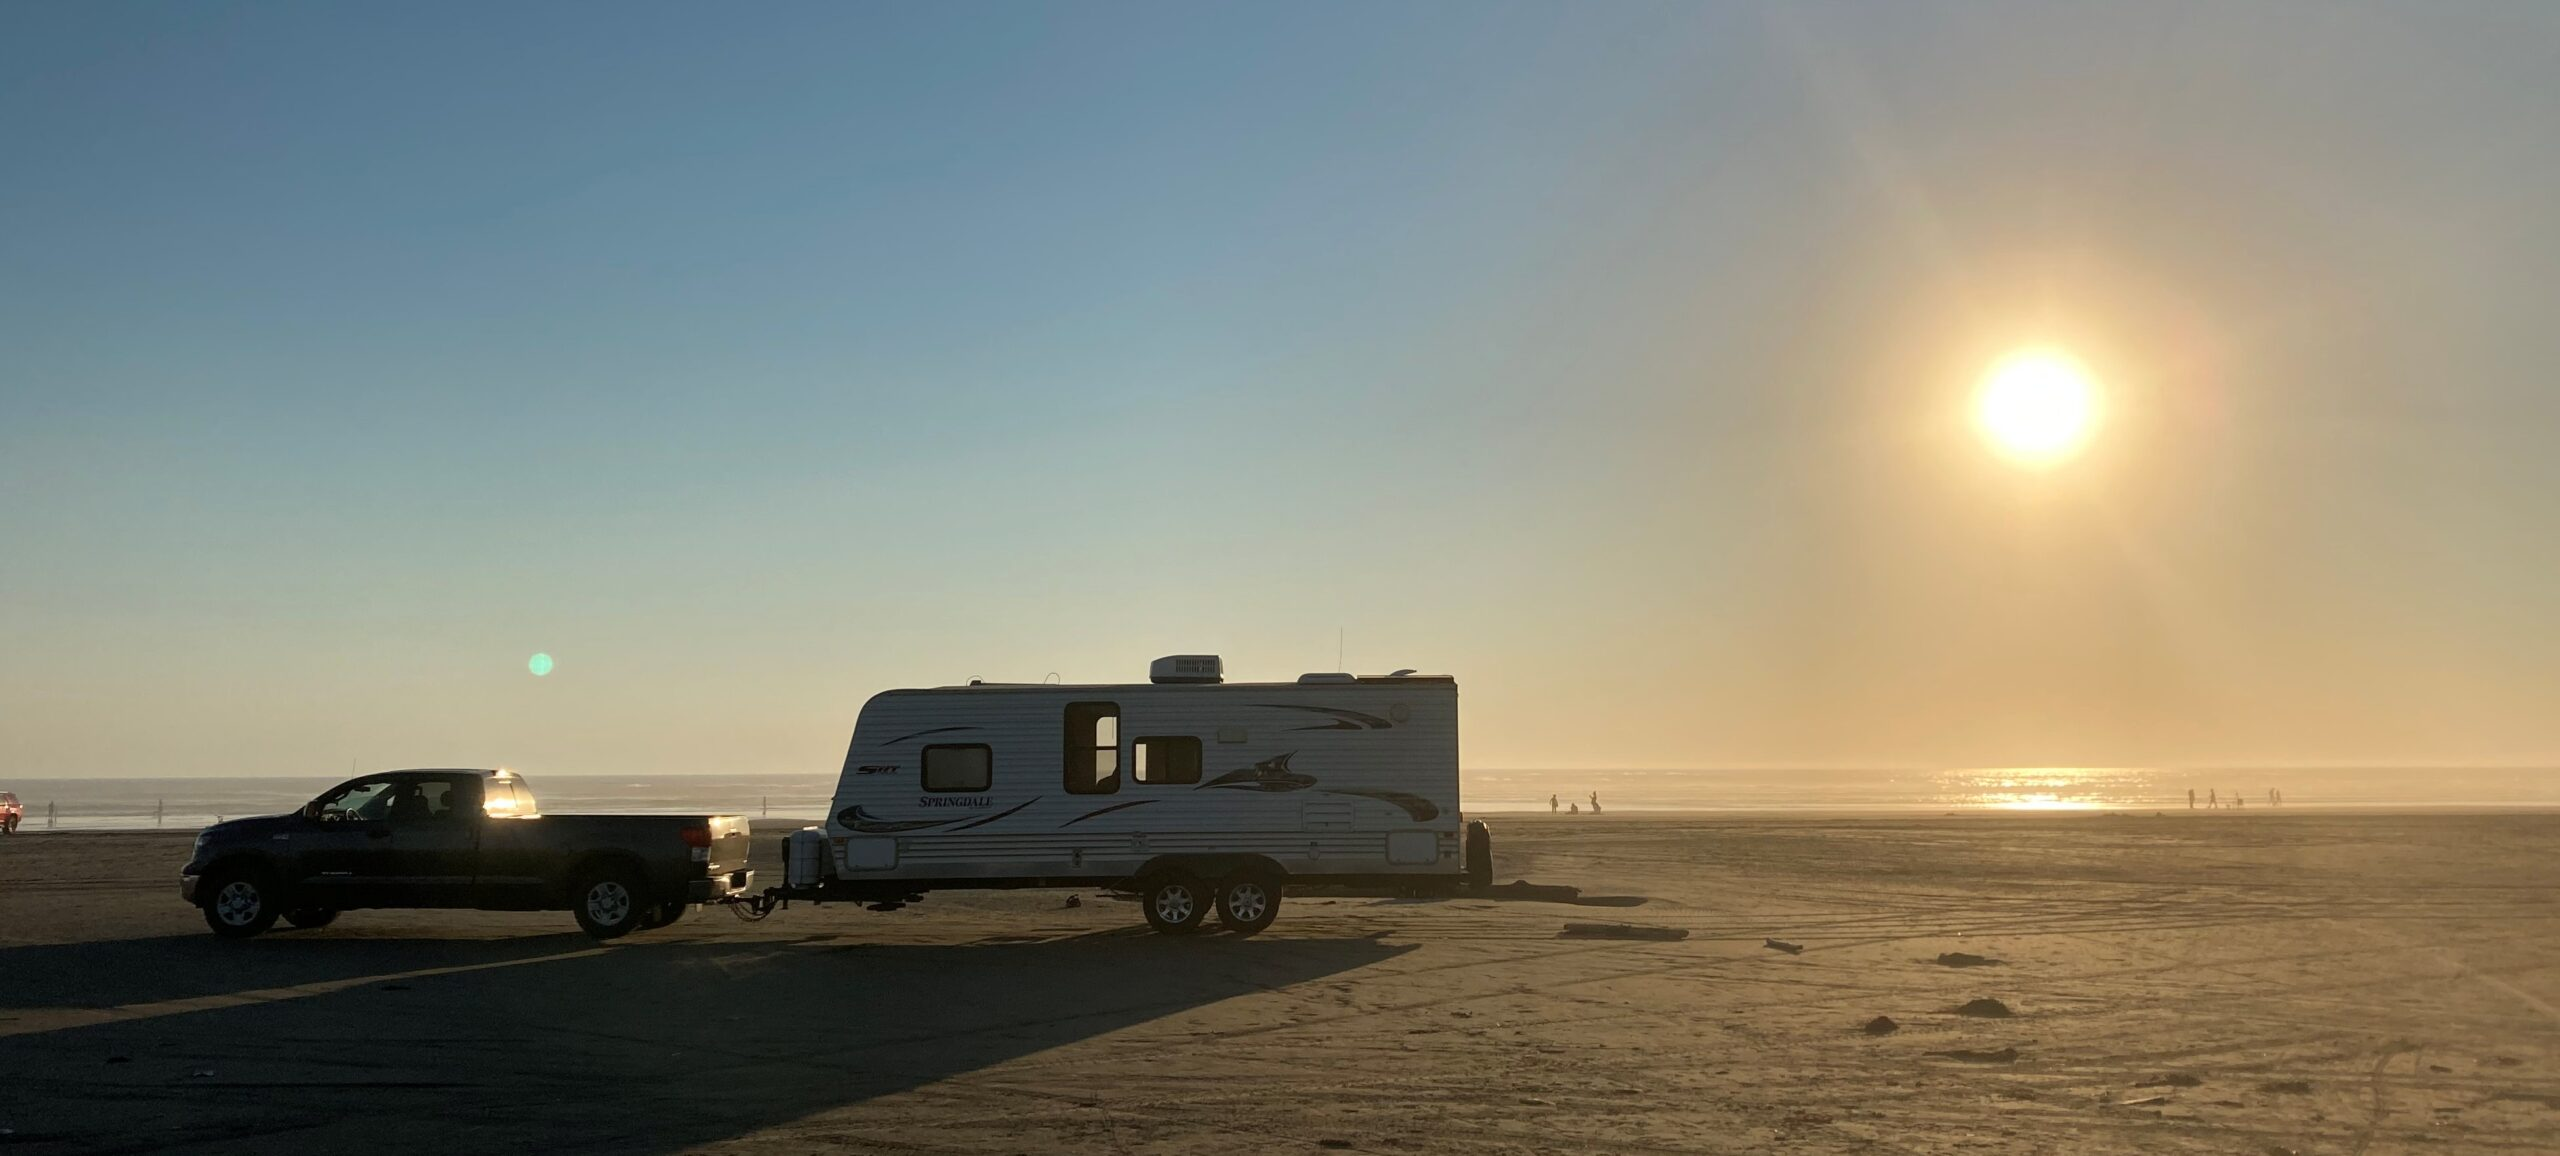 small RV cooling off at sunset